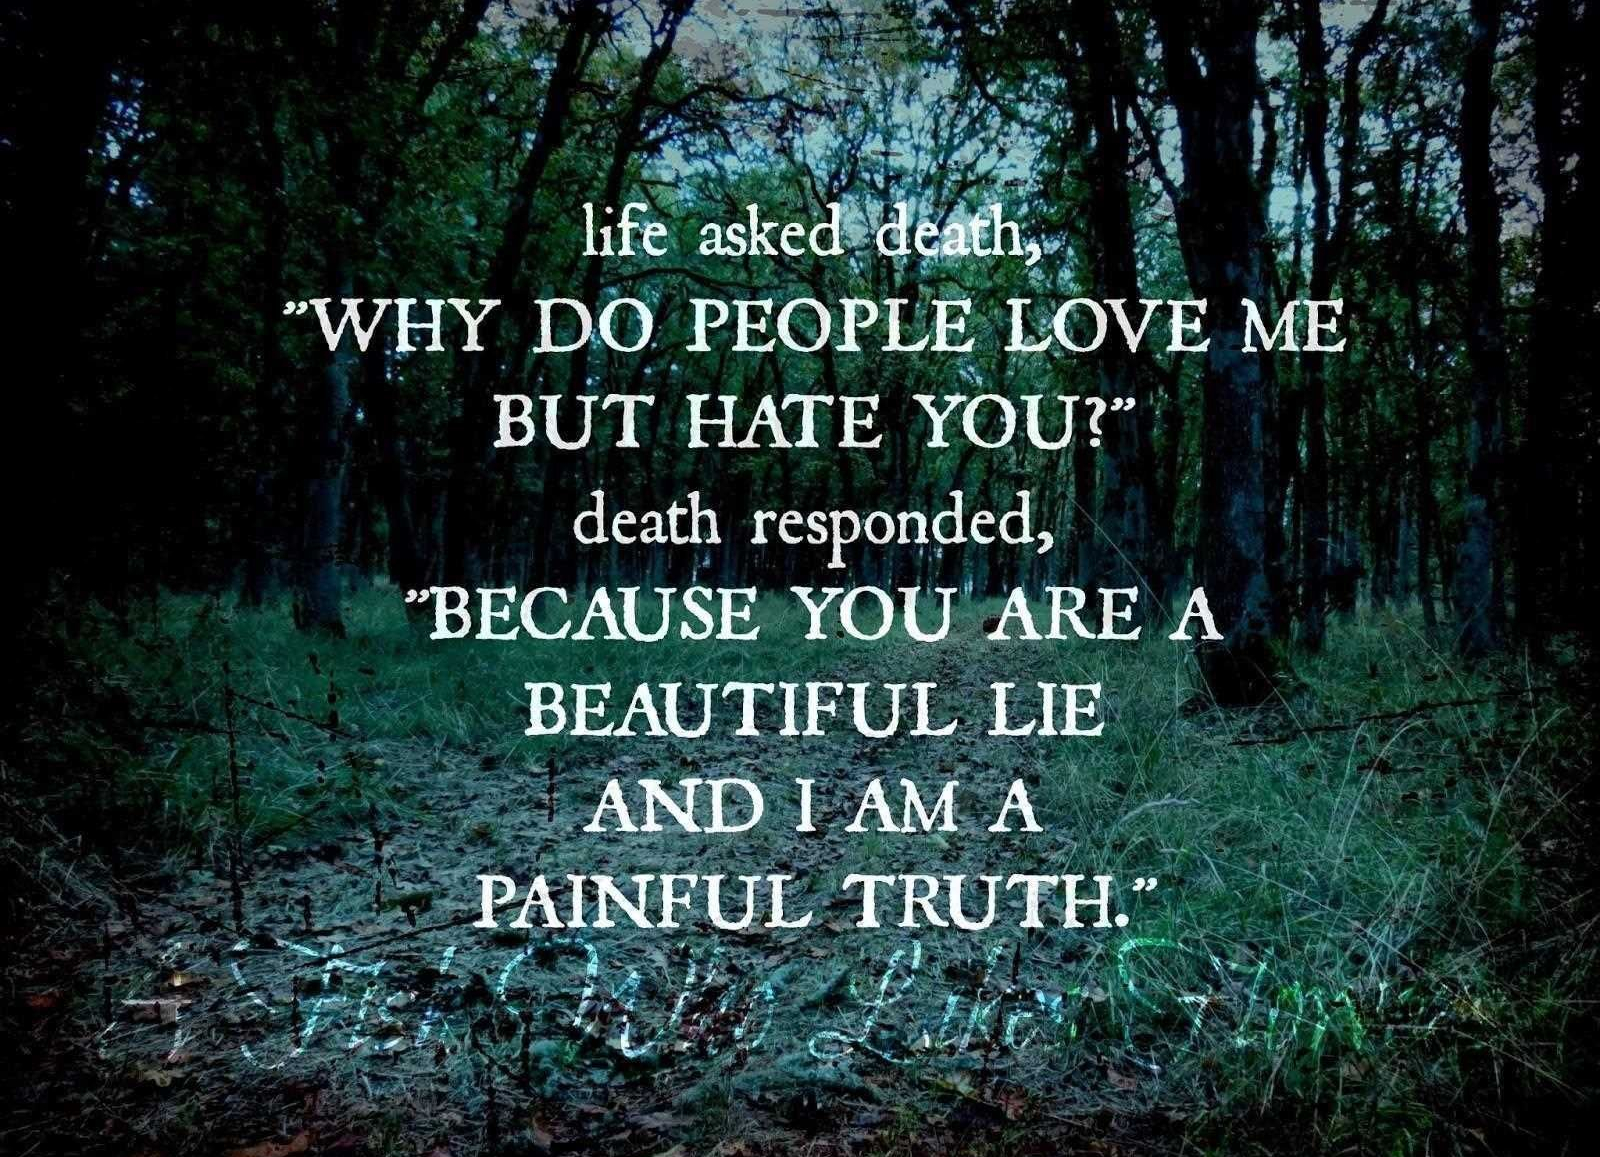 Life-Asked-Death-Why-Do-People-Love-Me-But-Hate-You-Death-Responded-Because-You-Are-A-Beautiful-Lie-And-I-Am-A-Painful-Truth